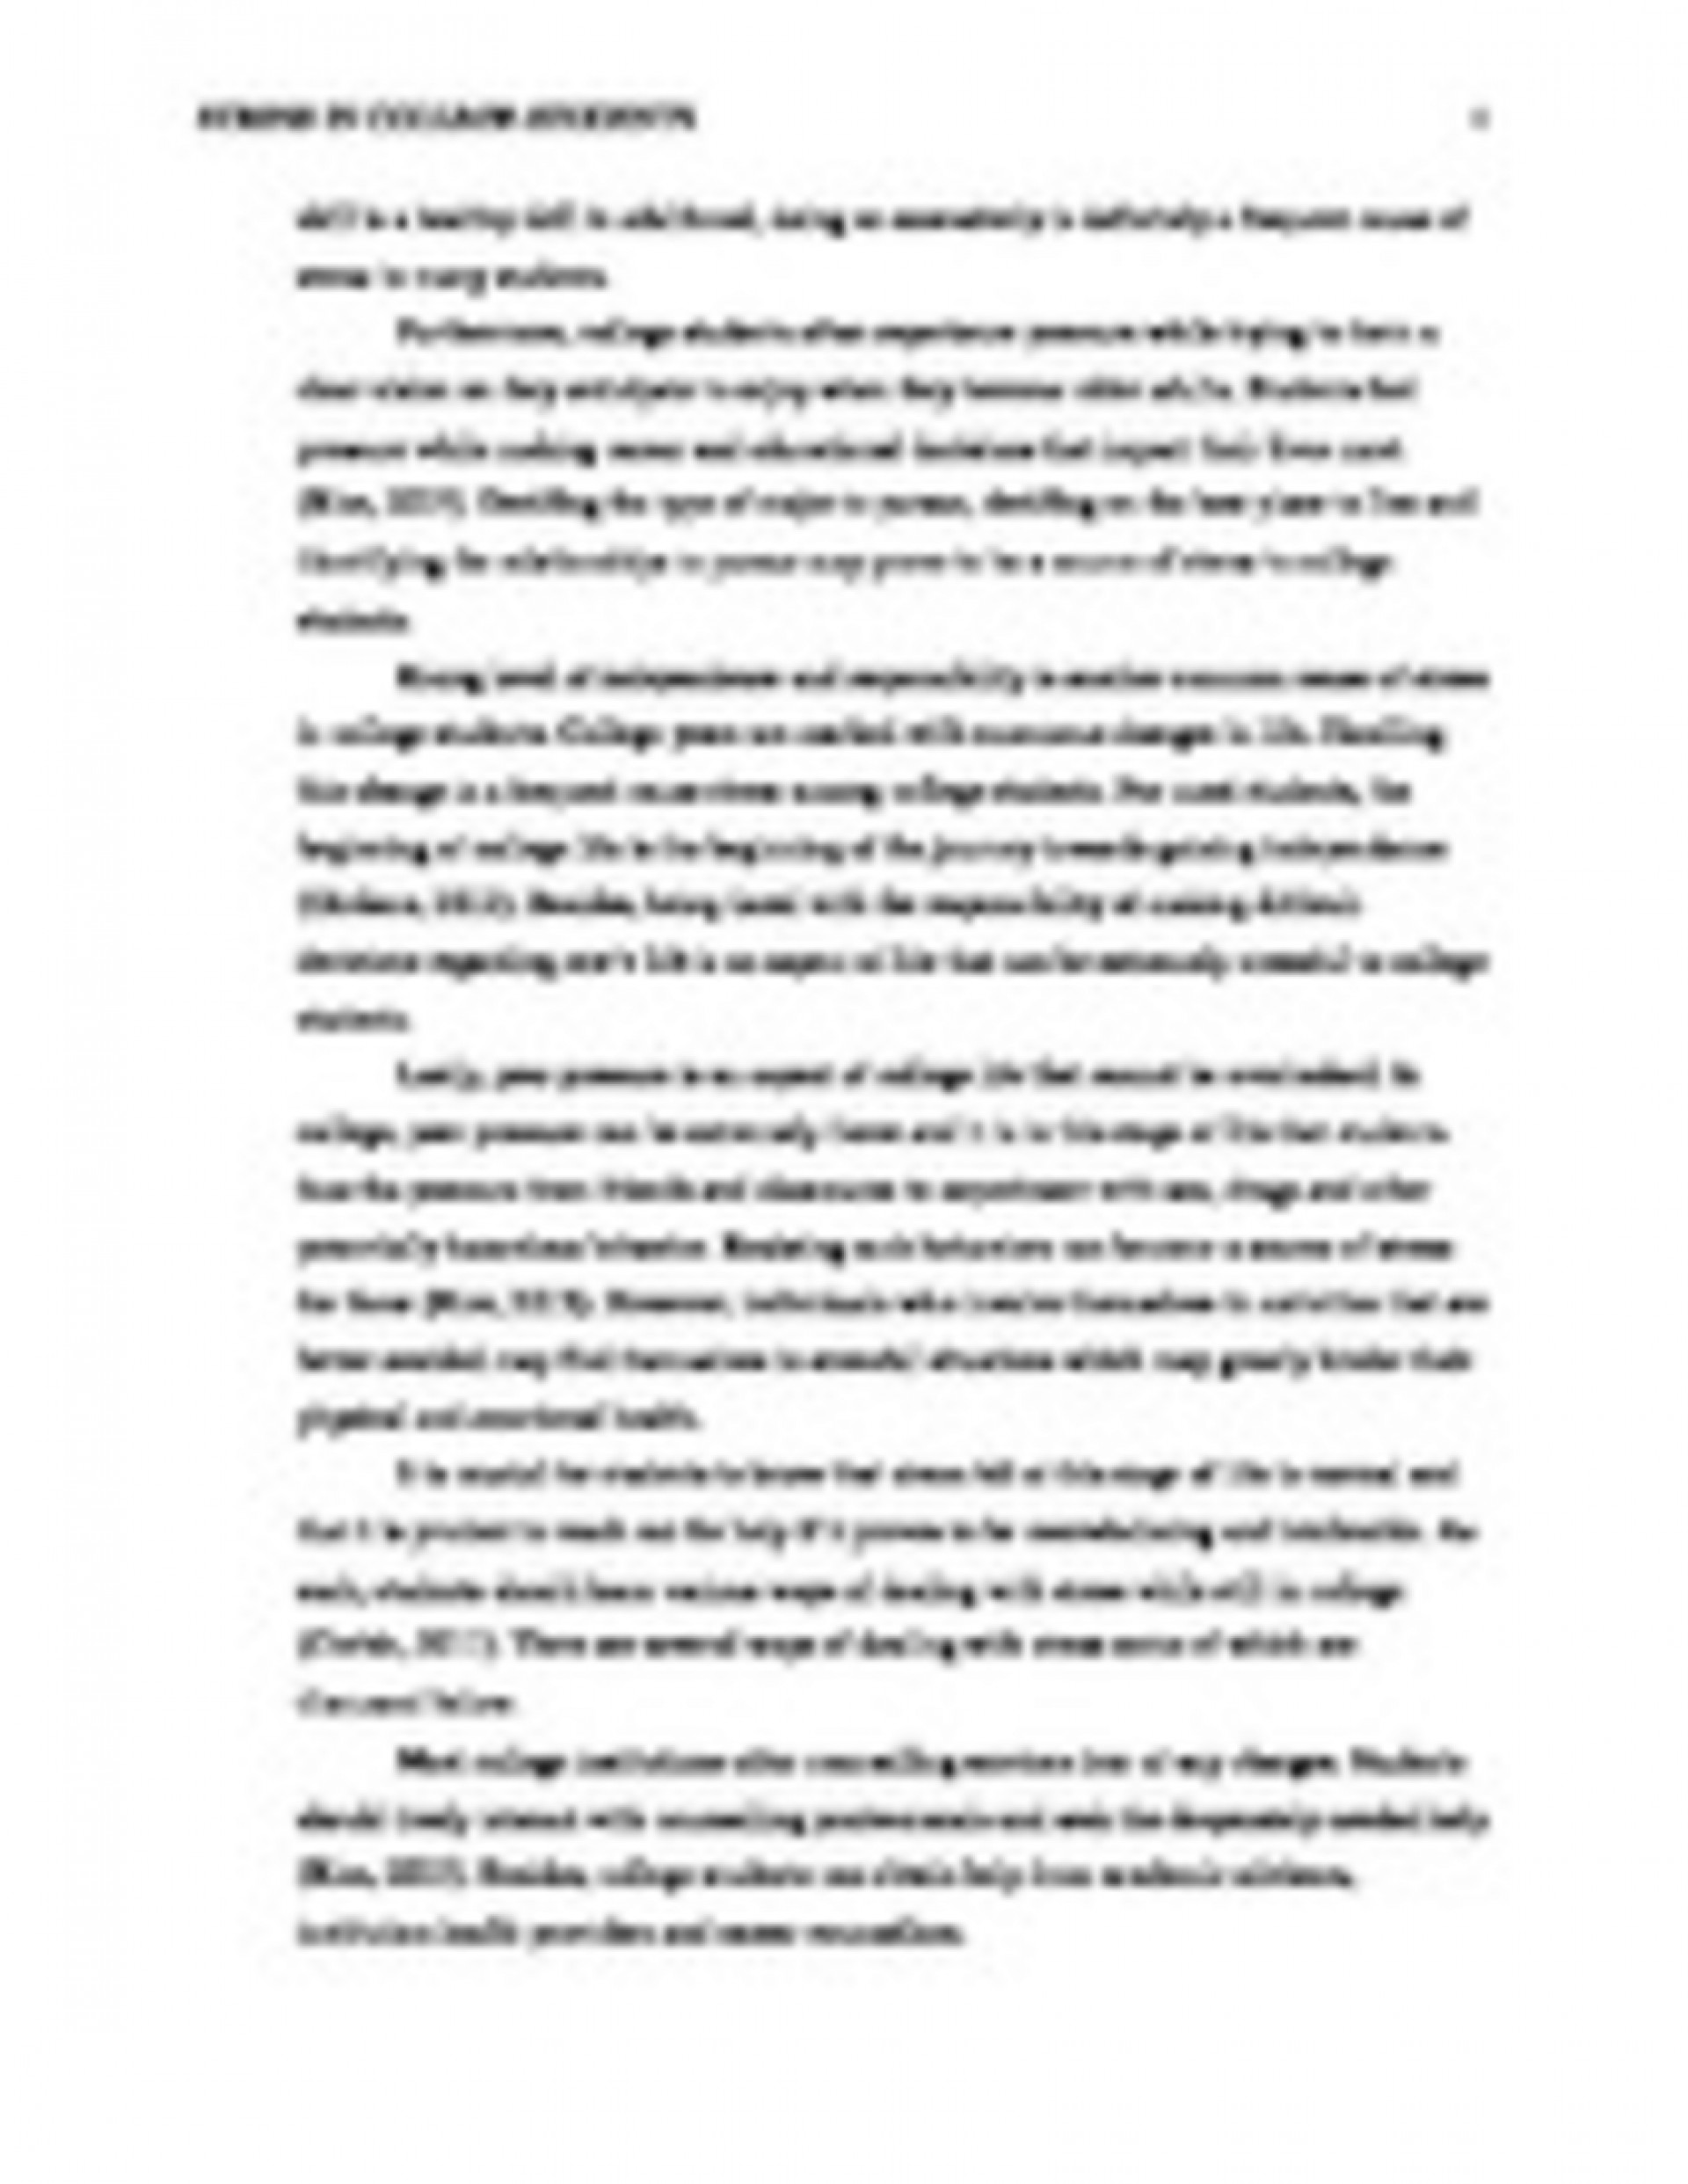 004 Essay Example Management Complete  Copypage3 On Unforgettable Stress And Health Exam In Hindi1920